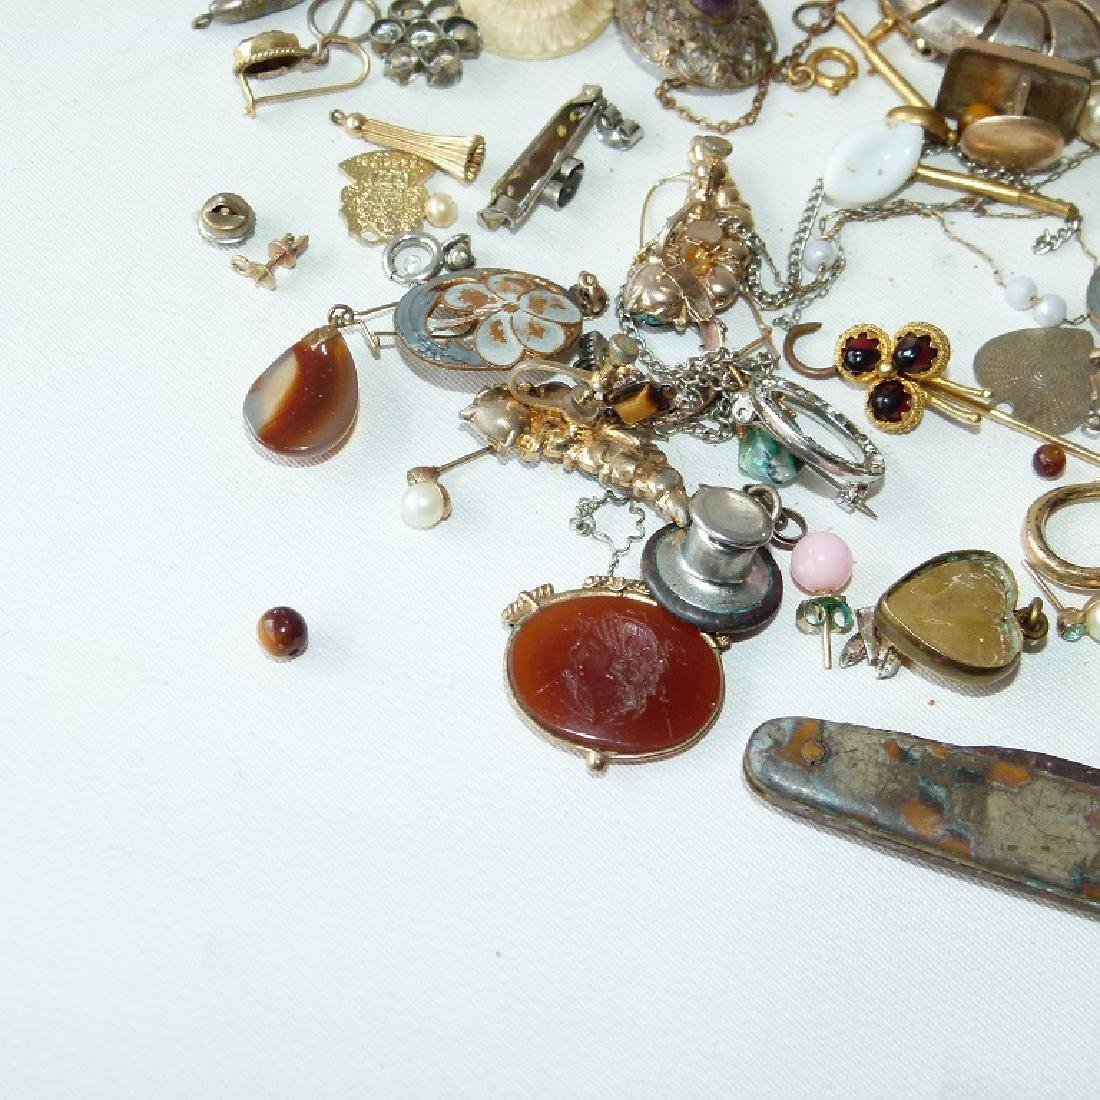 LOT ASSORTED VICTORIAN RINGS/FINDINGS 19/20TH C. - 3